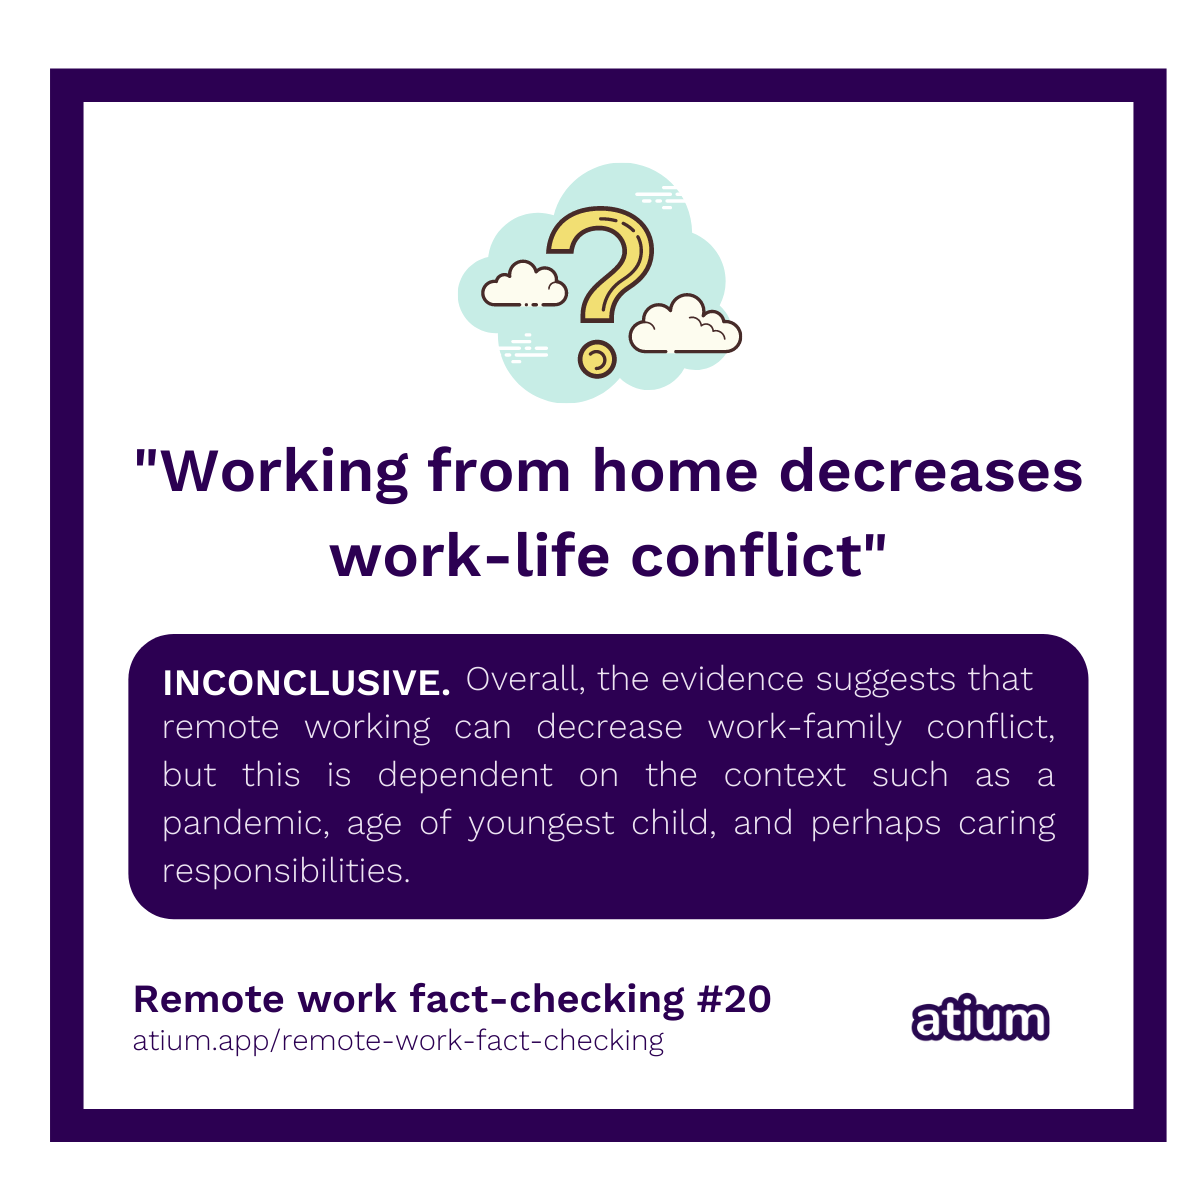 Working from home decreases work-life conflict